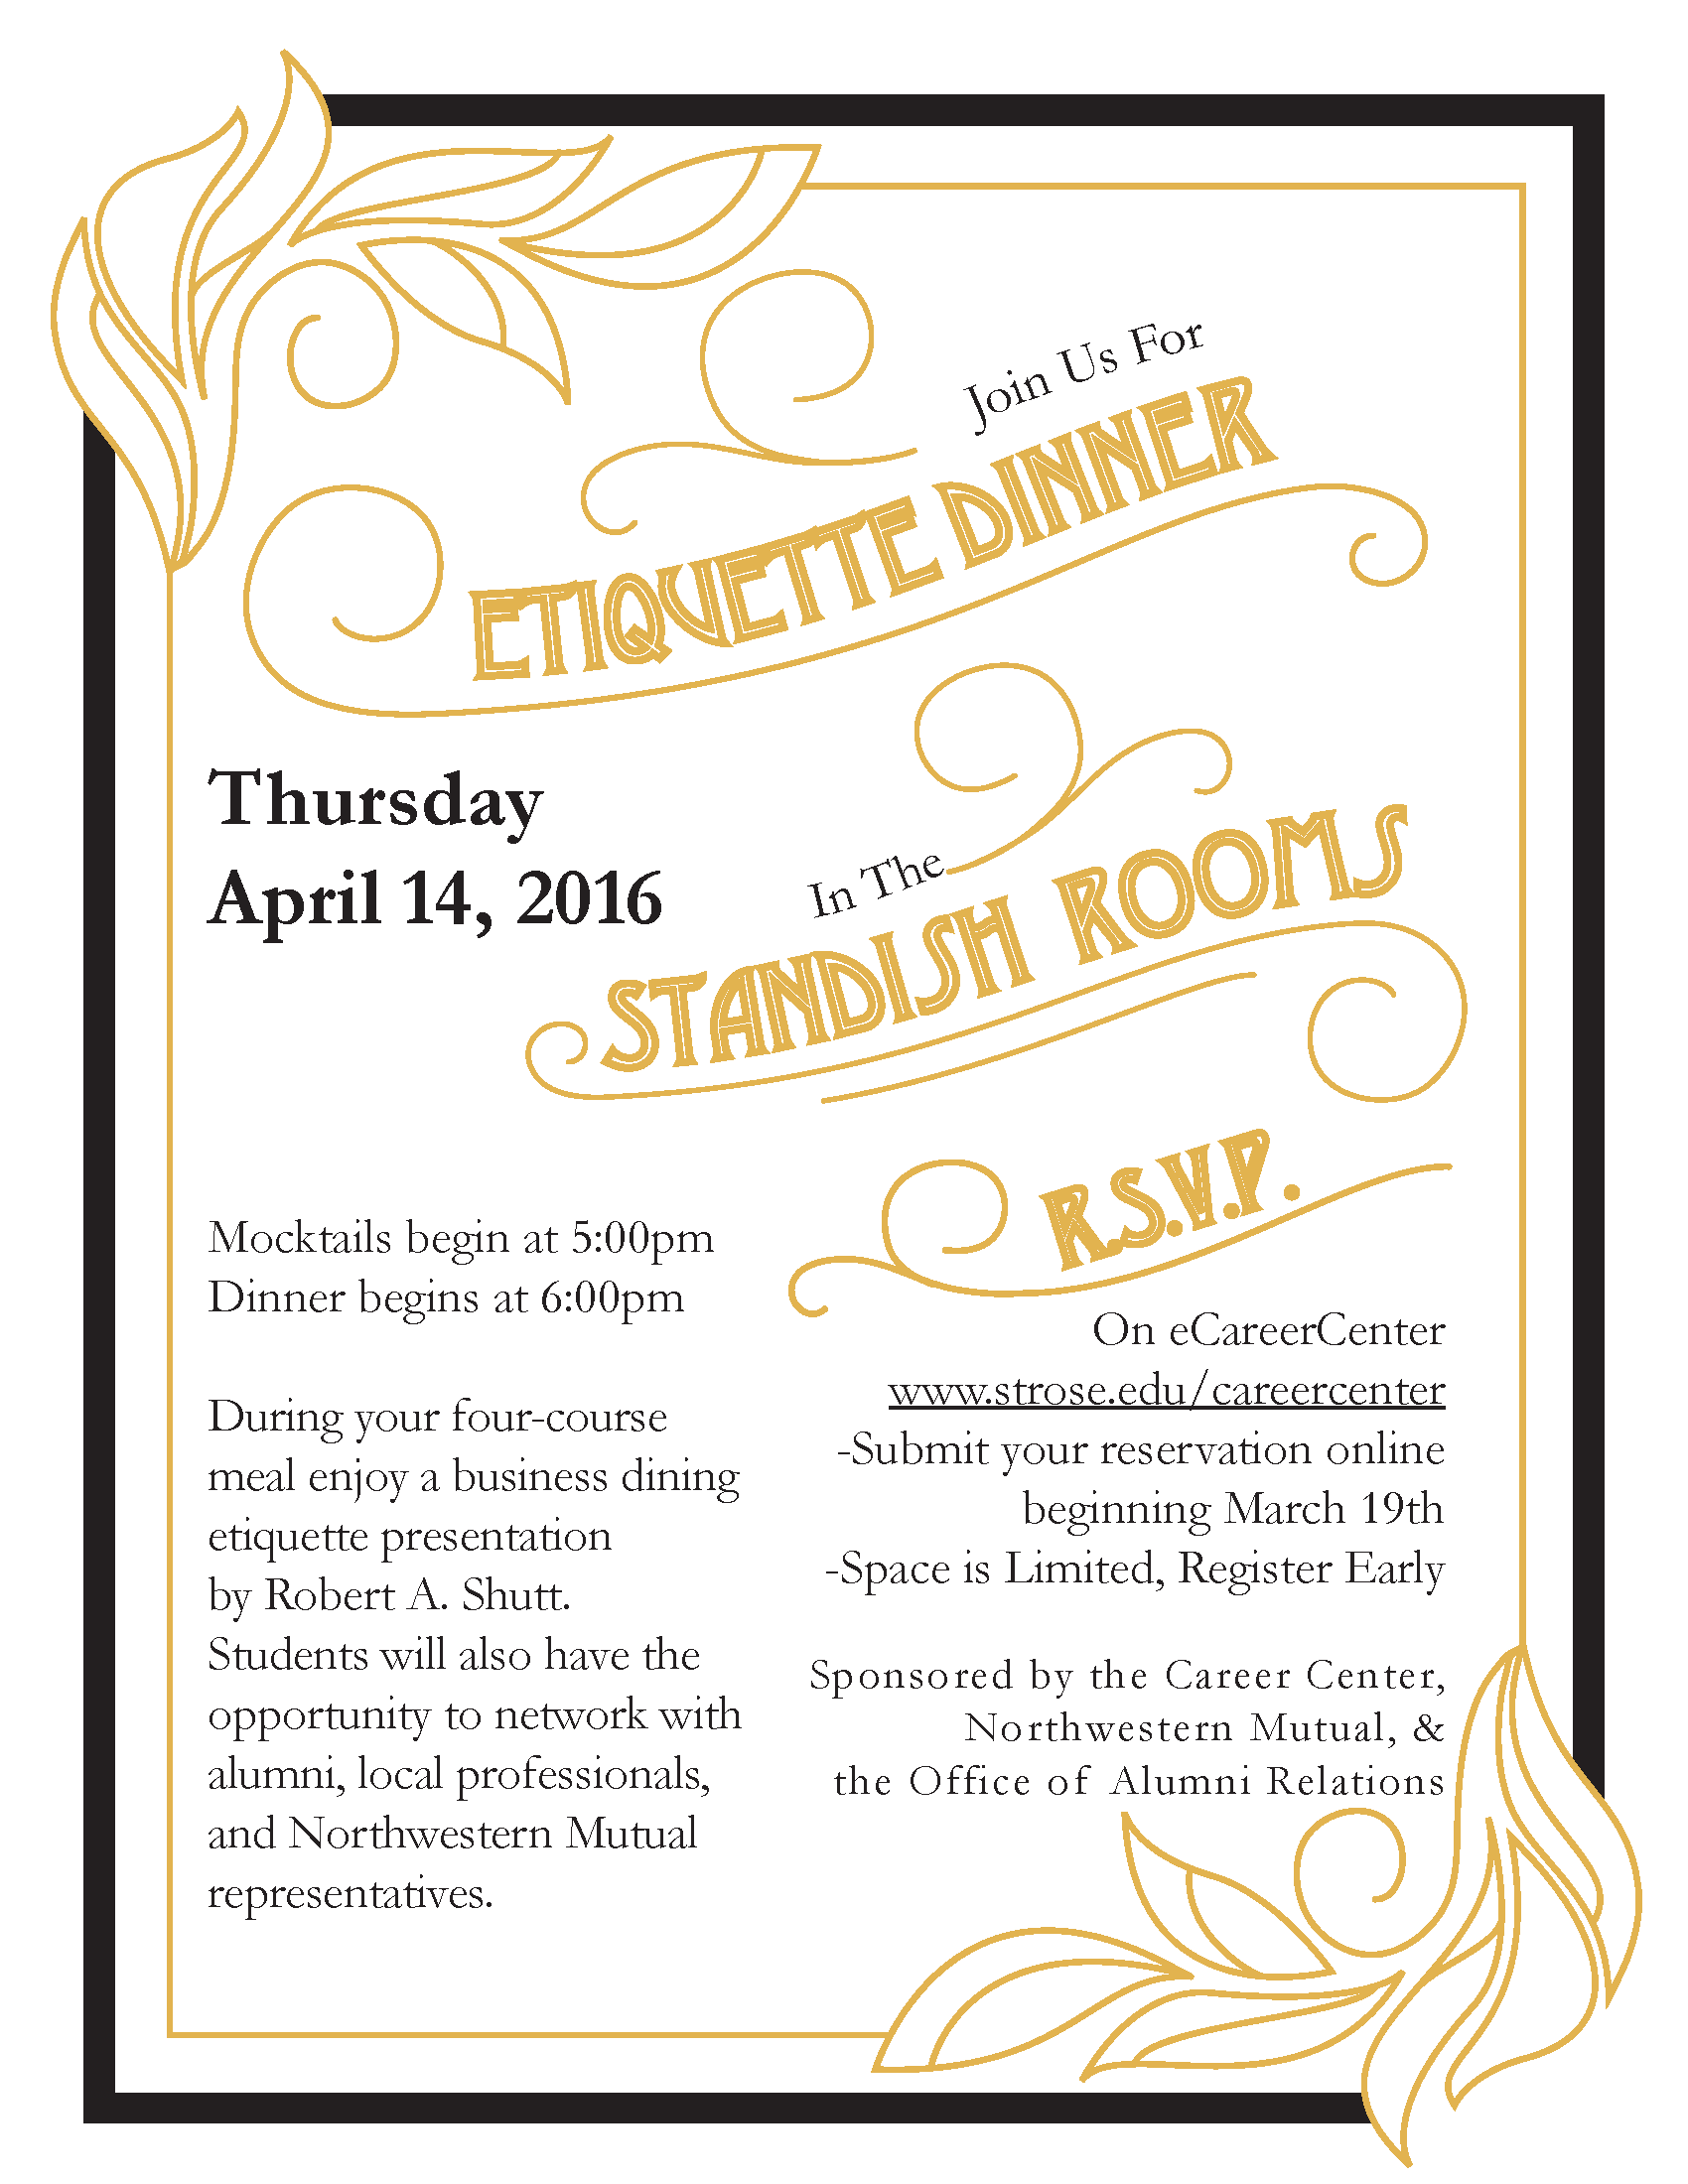 Etiquette Dinner Invite The College Of Saint Rose